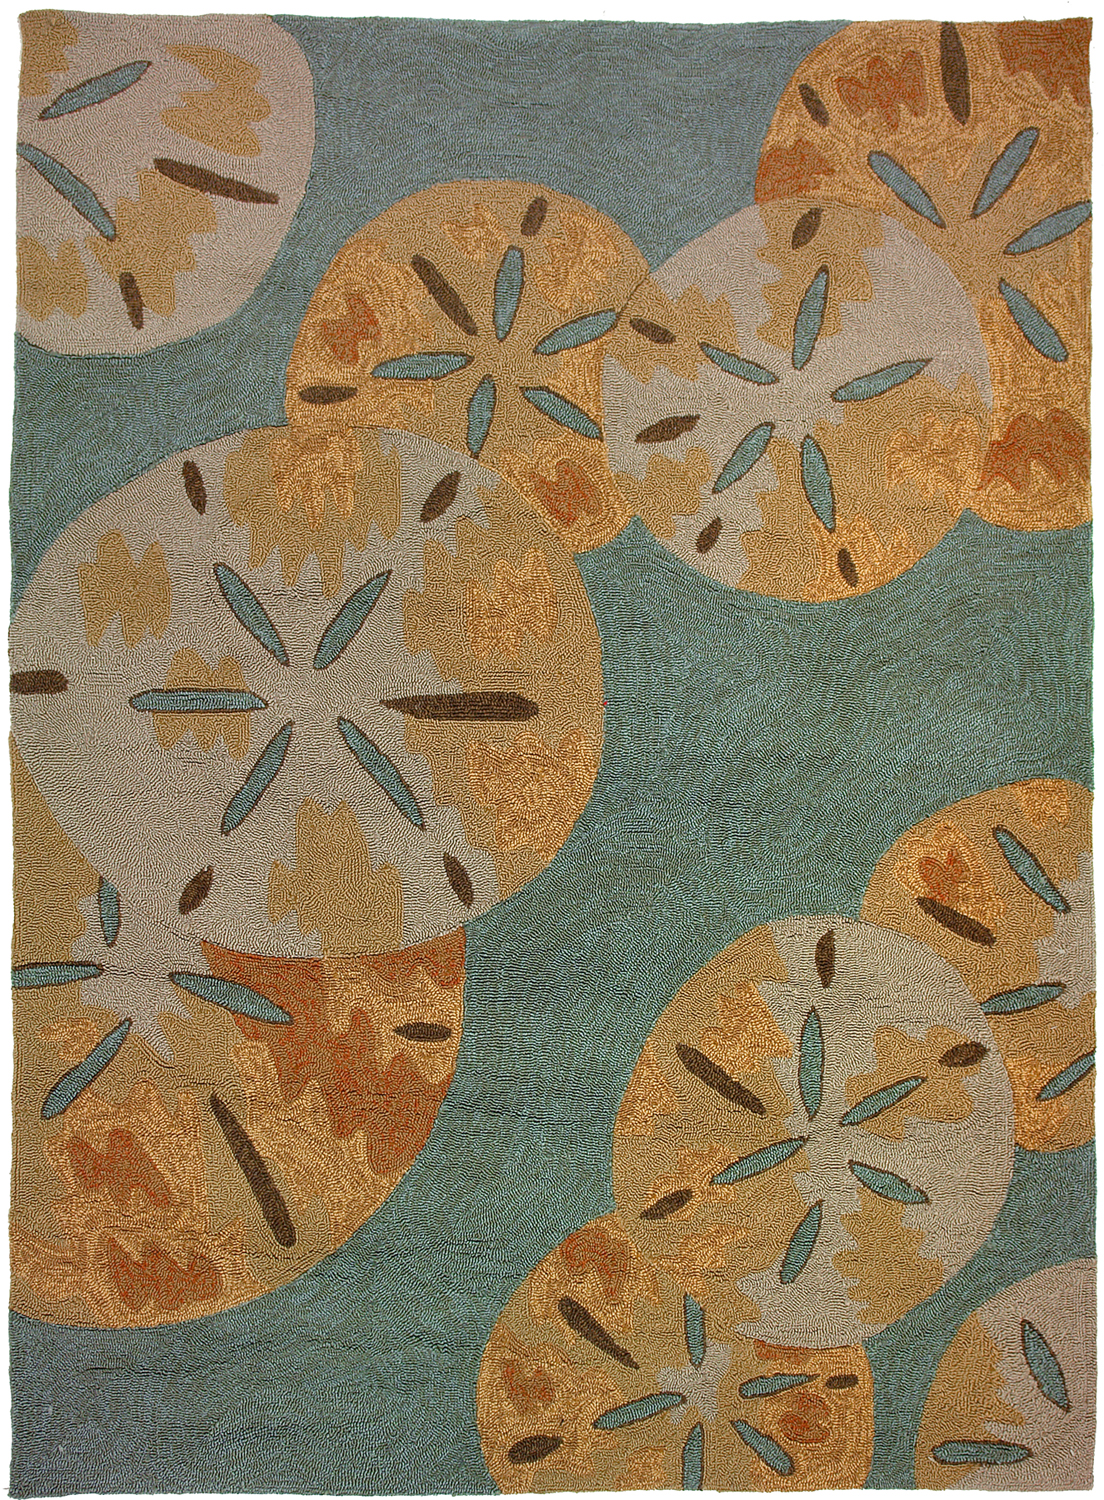 Sand Dollar By The Sea Rug